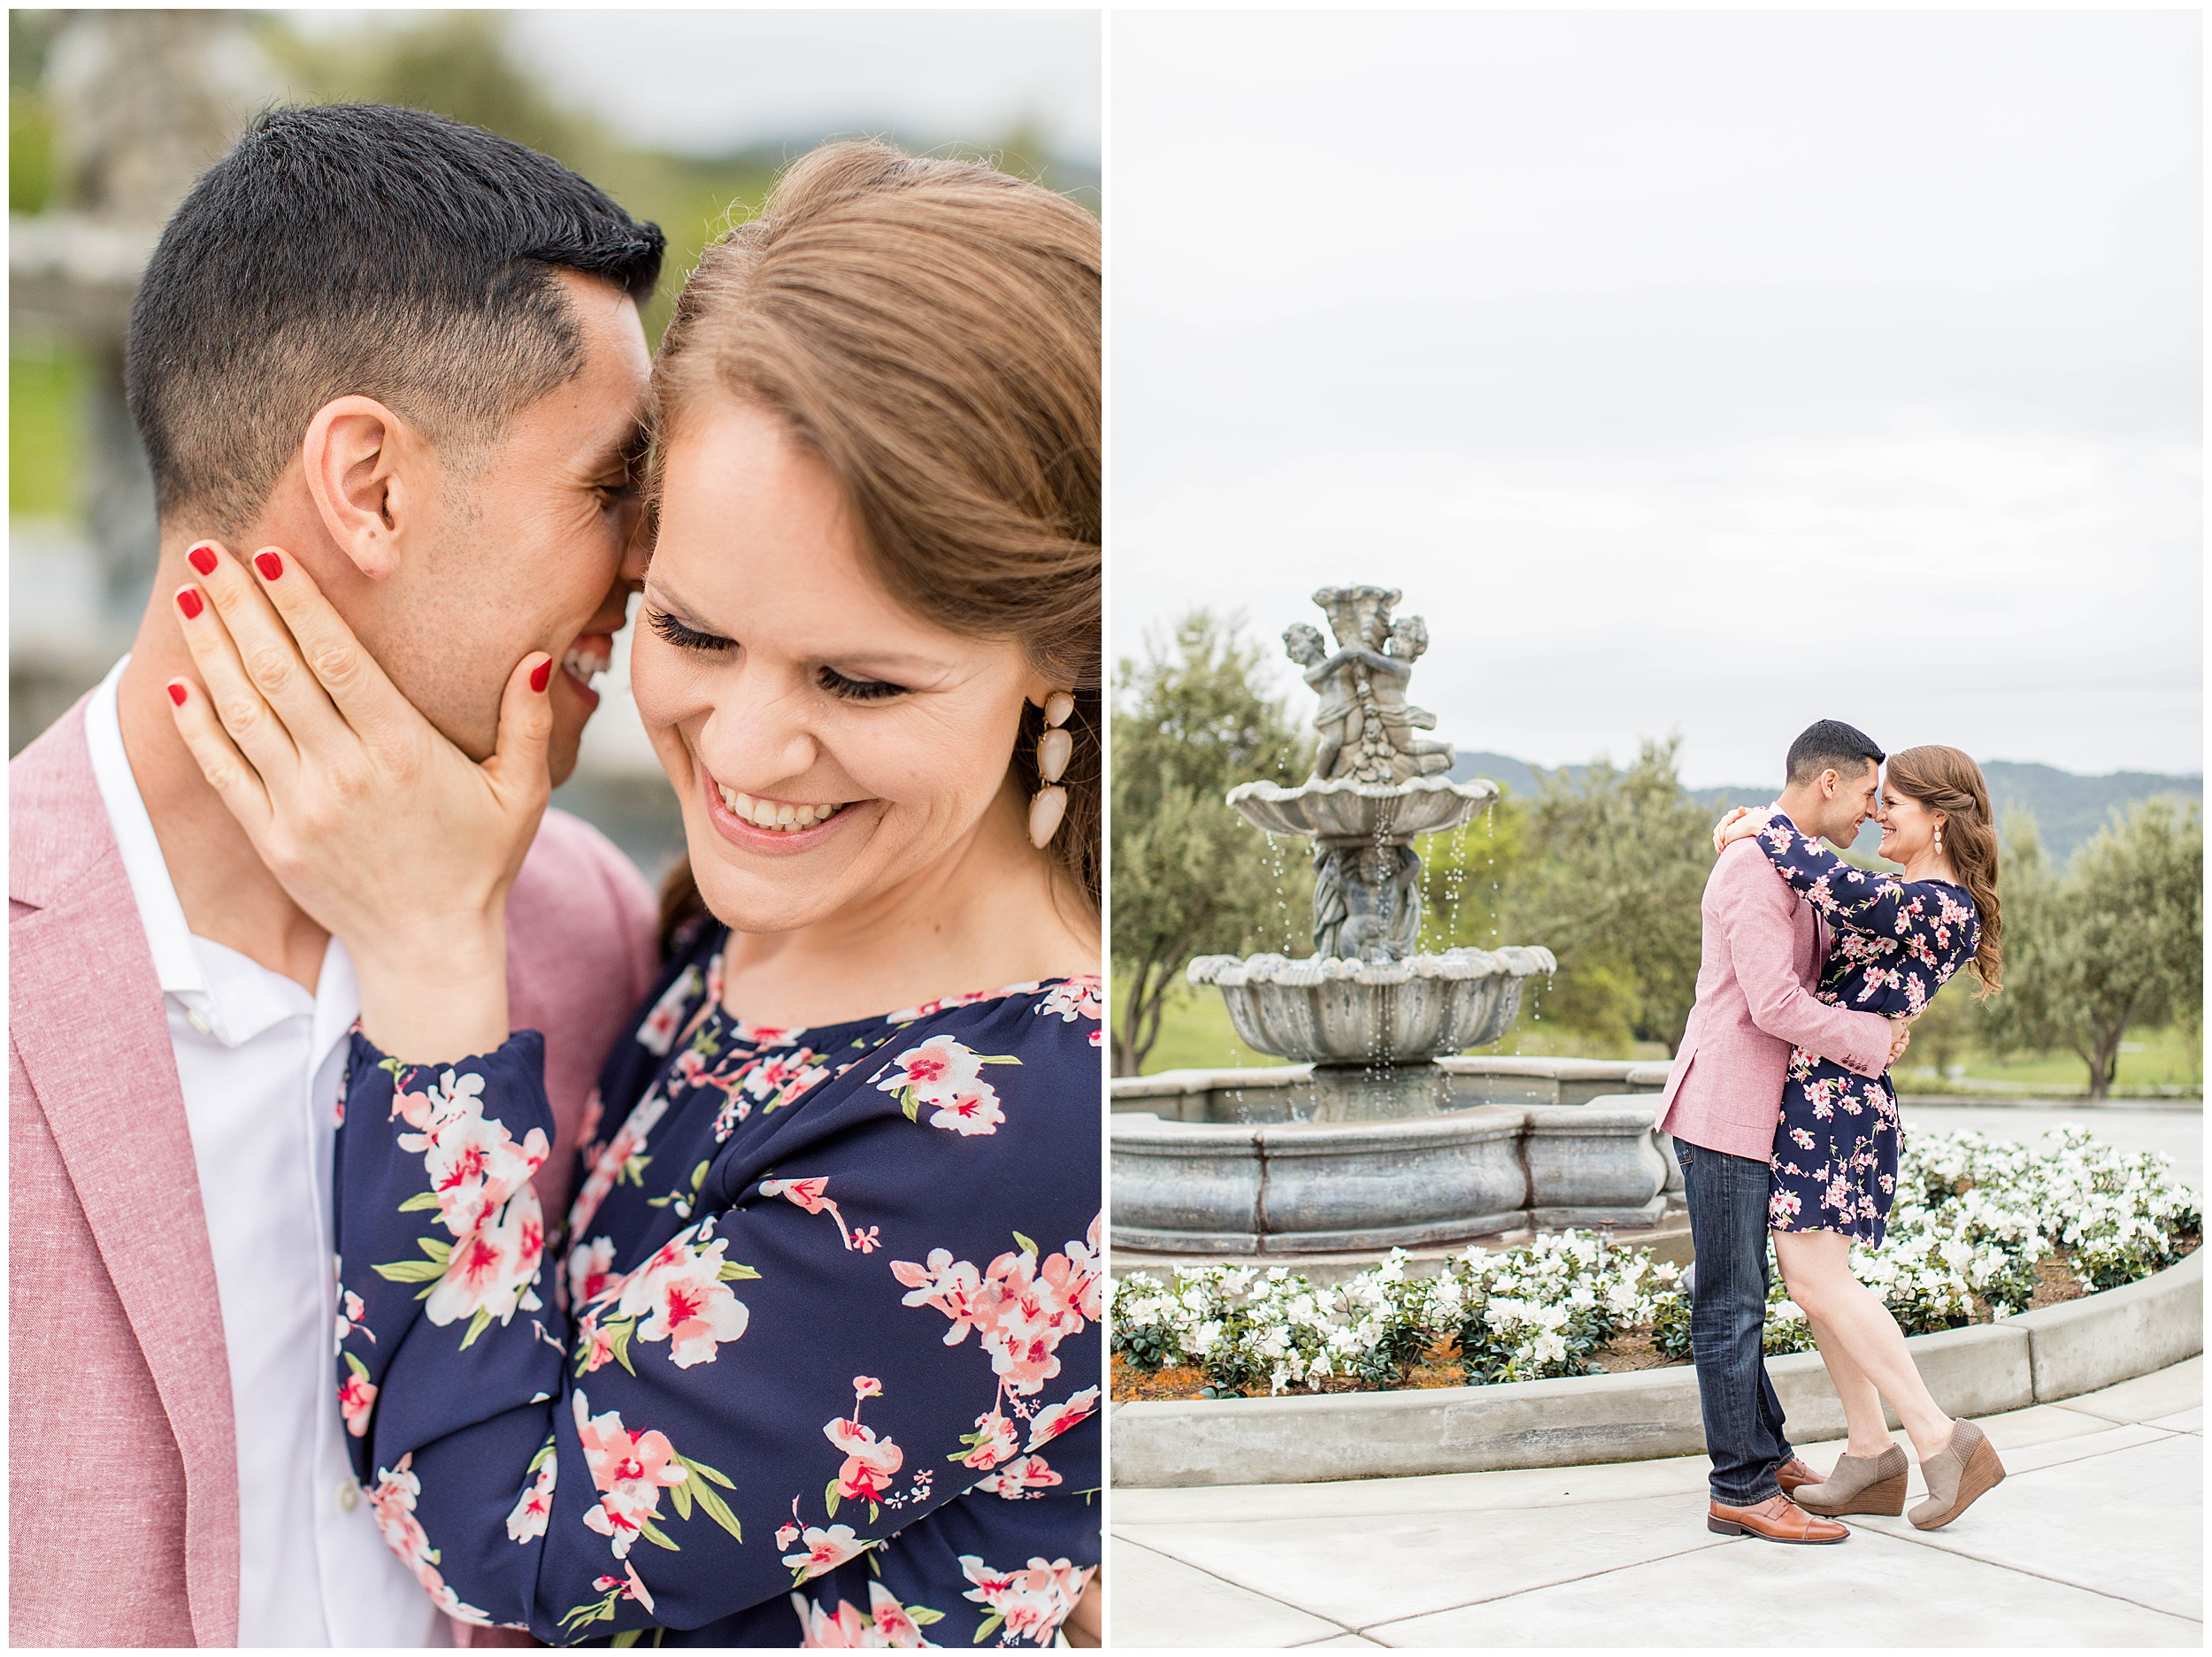 Willow Heights Mansion-San Jose Wedding Photographer-Engagement Session-Angela Sue Photography_0002.jpg